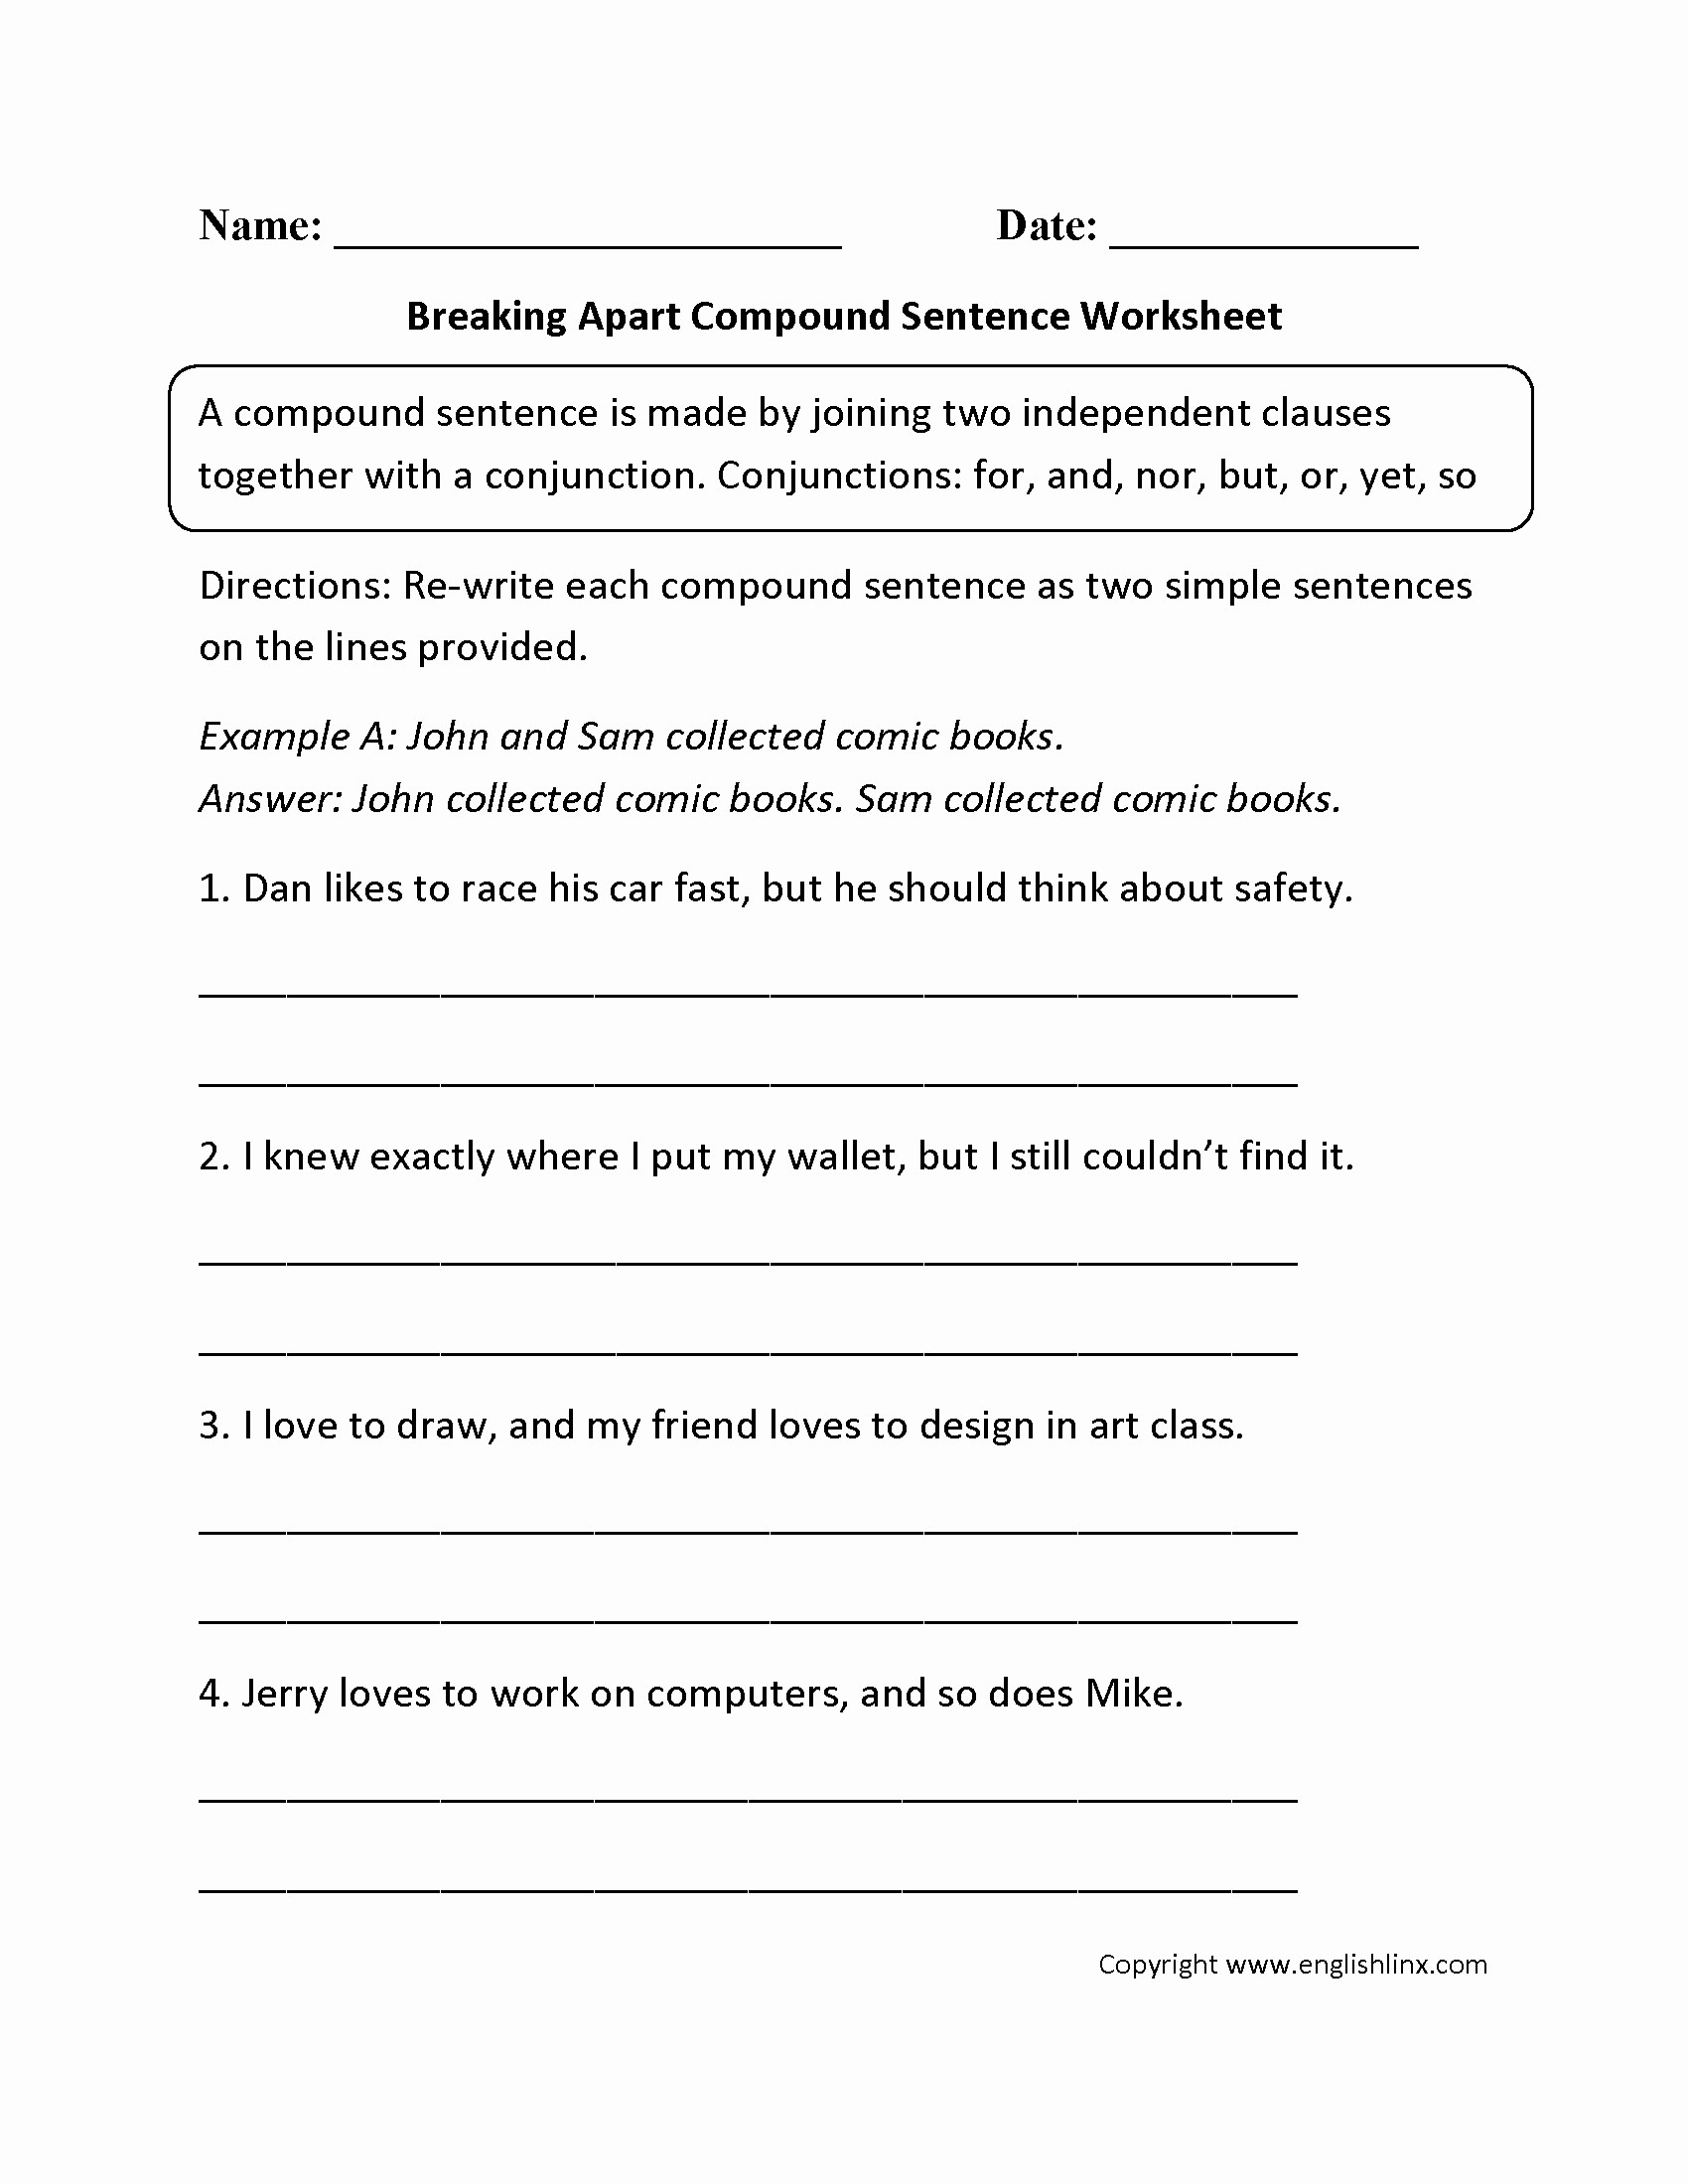 Complex Sentence Worksheets 4th Grade Plex Sentence Worksheets 5th Grade